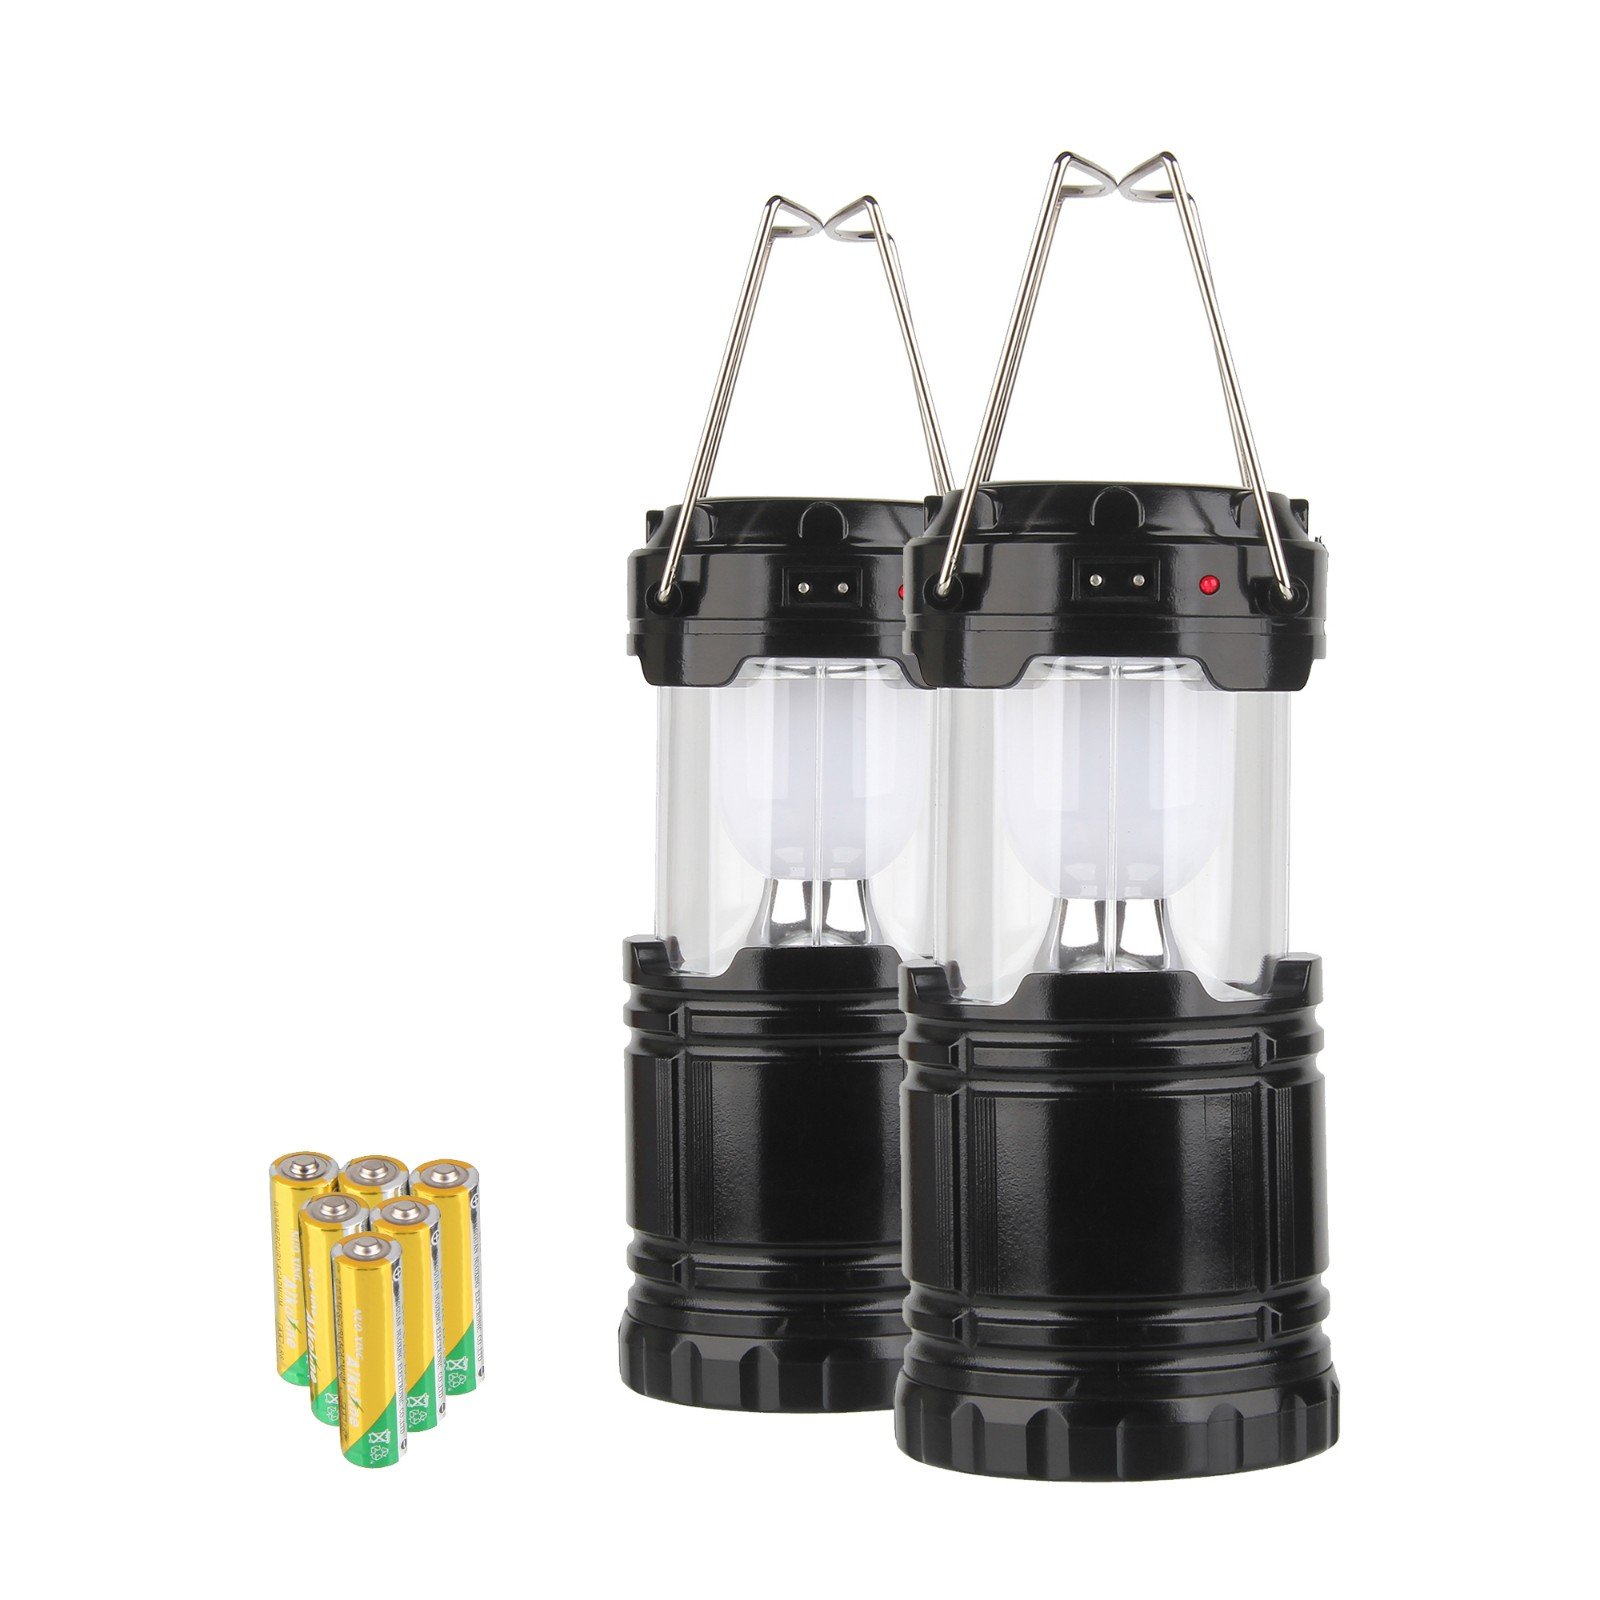 Beauty7 Pack 2 Collapsible Portable COB LED Solar/DC Rechargeable Bright Hanging Camping Tent Lantern with 6X AA Batteries for Hiking Fishing Trekking Hurricane Storm Outage Emergency